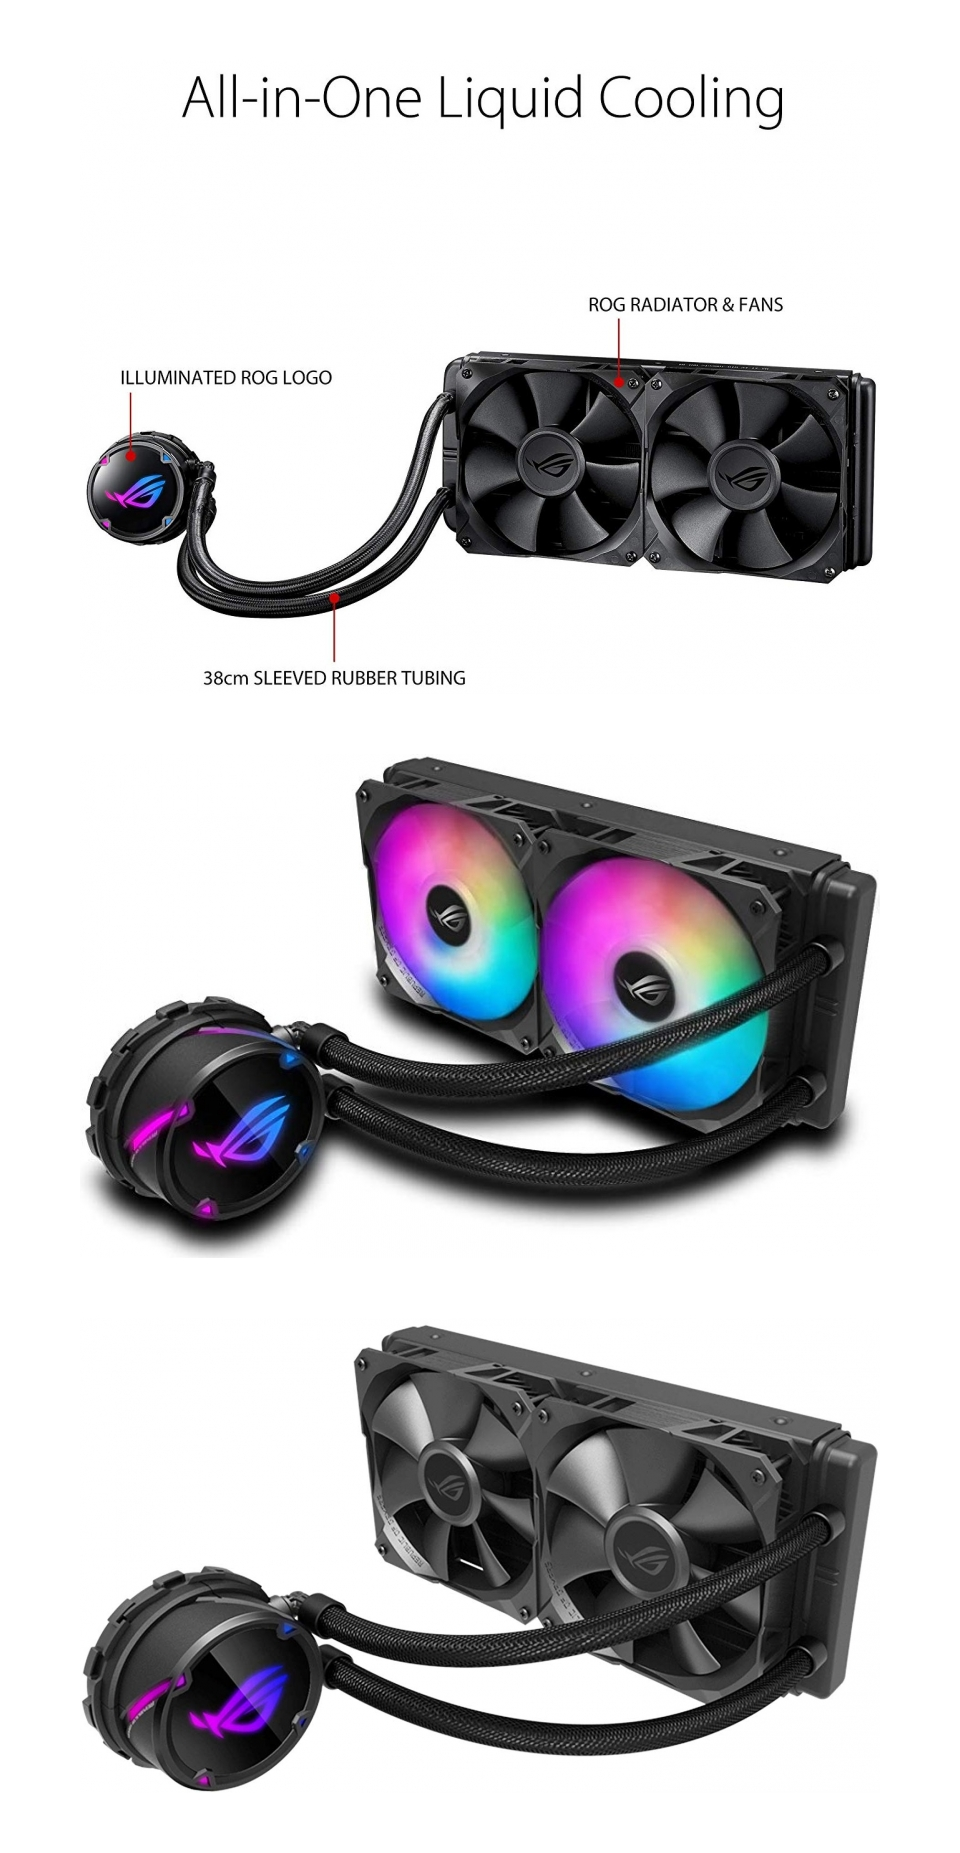 ASUS ROG Strix LC 240 ARGB AIO Liquid CPU Cooler product